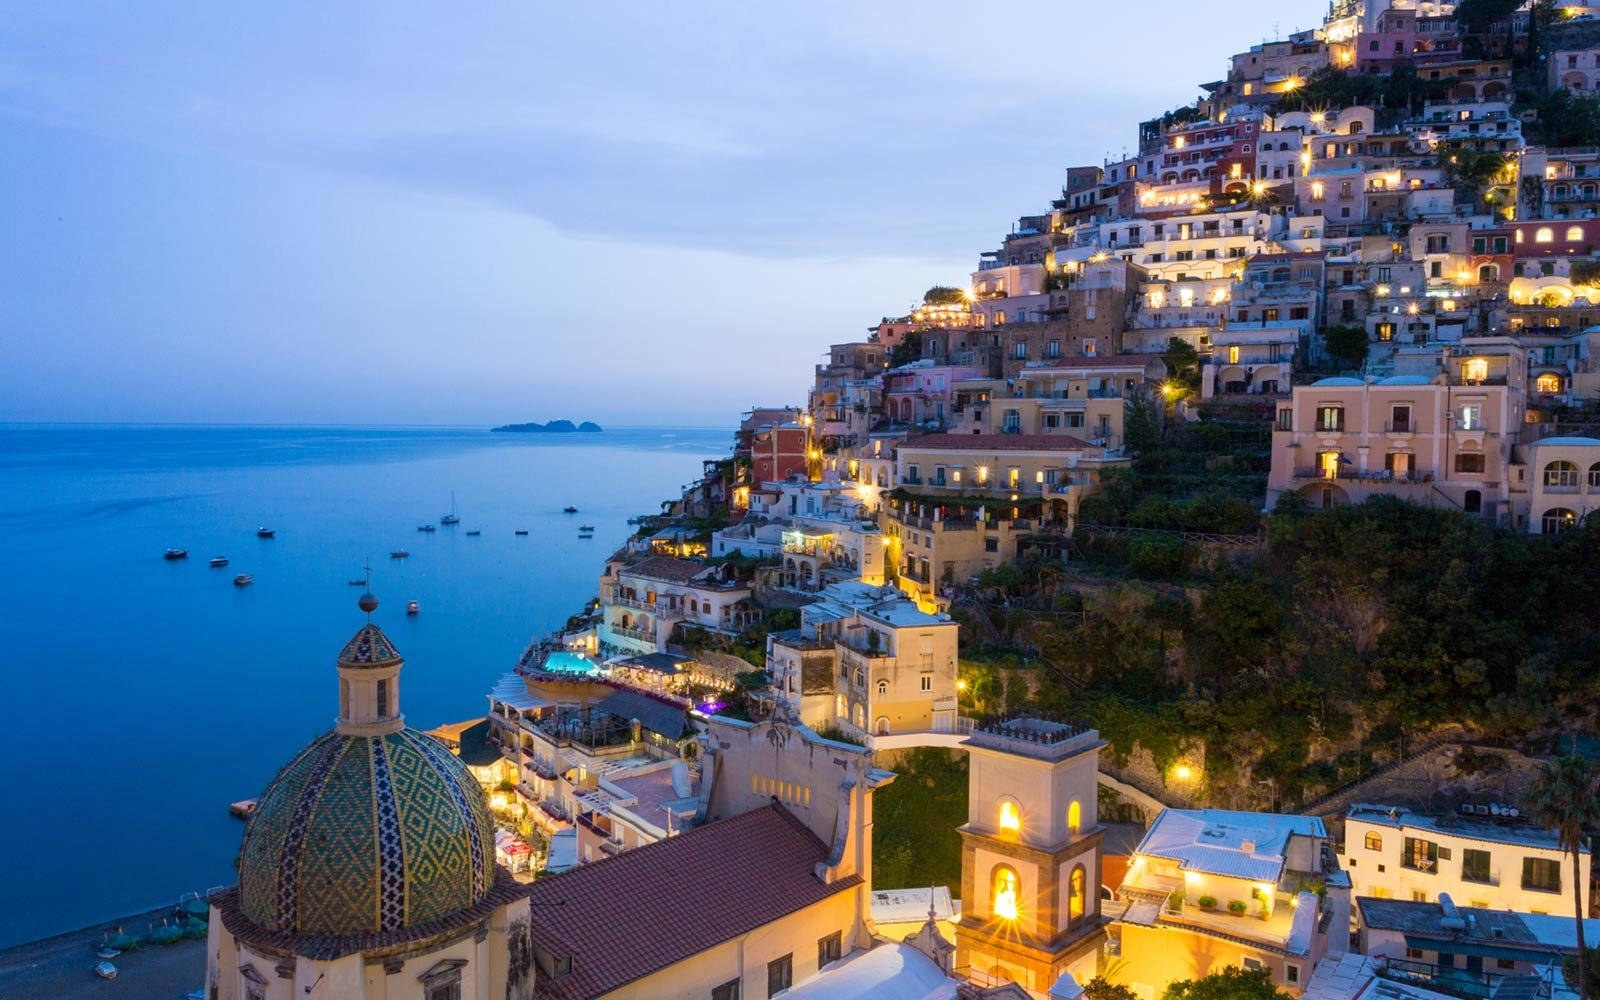 5 Most Beautiful Coasts (Towns) In Italy To Visit